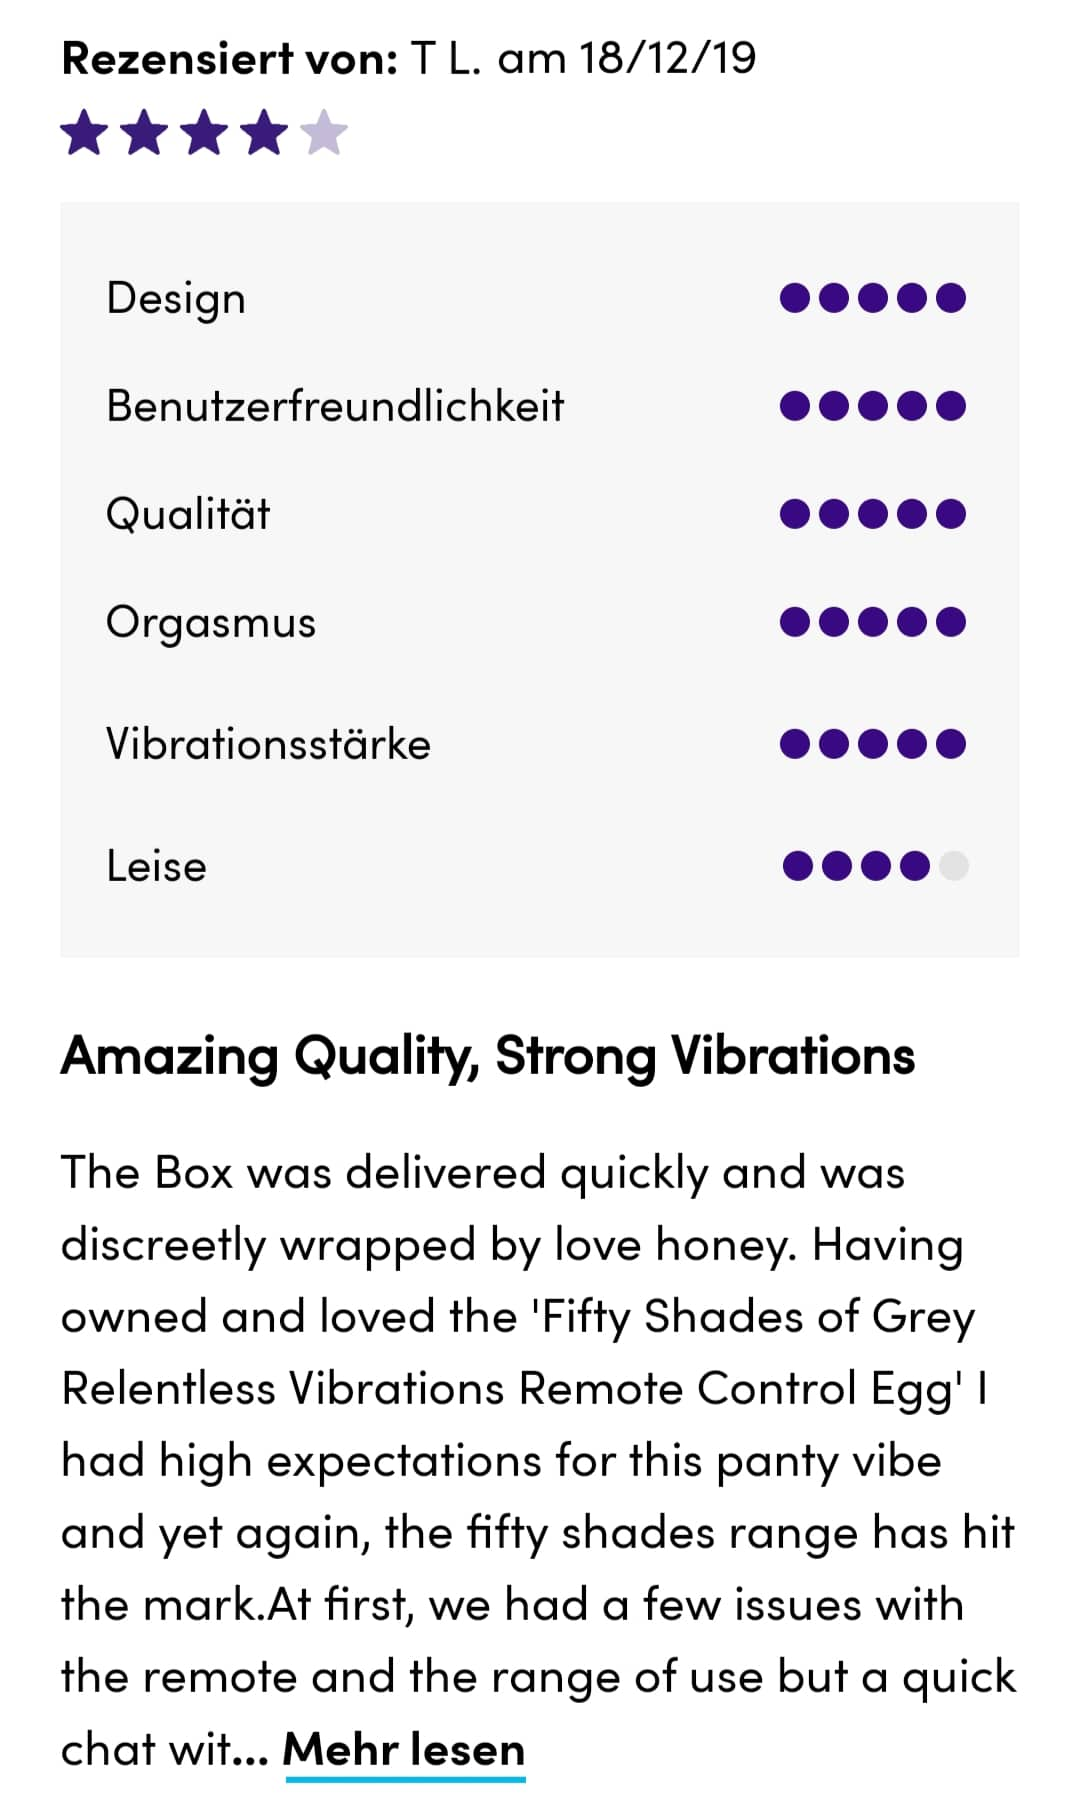 Fifty Shades of Grey Relentless Vibrations 4 Sterne